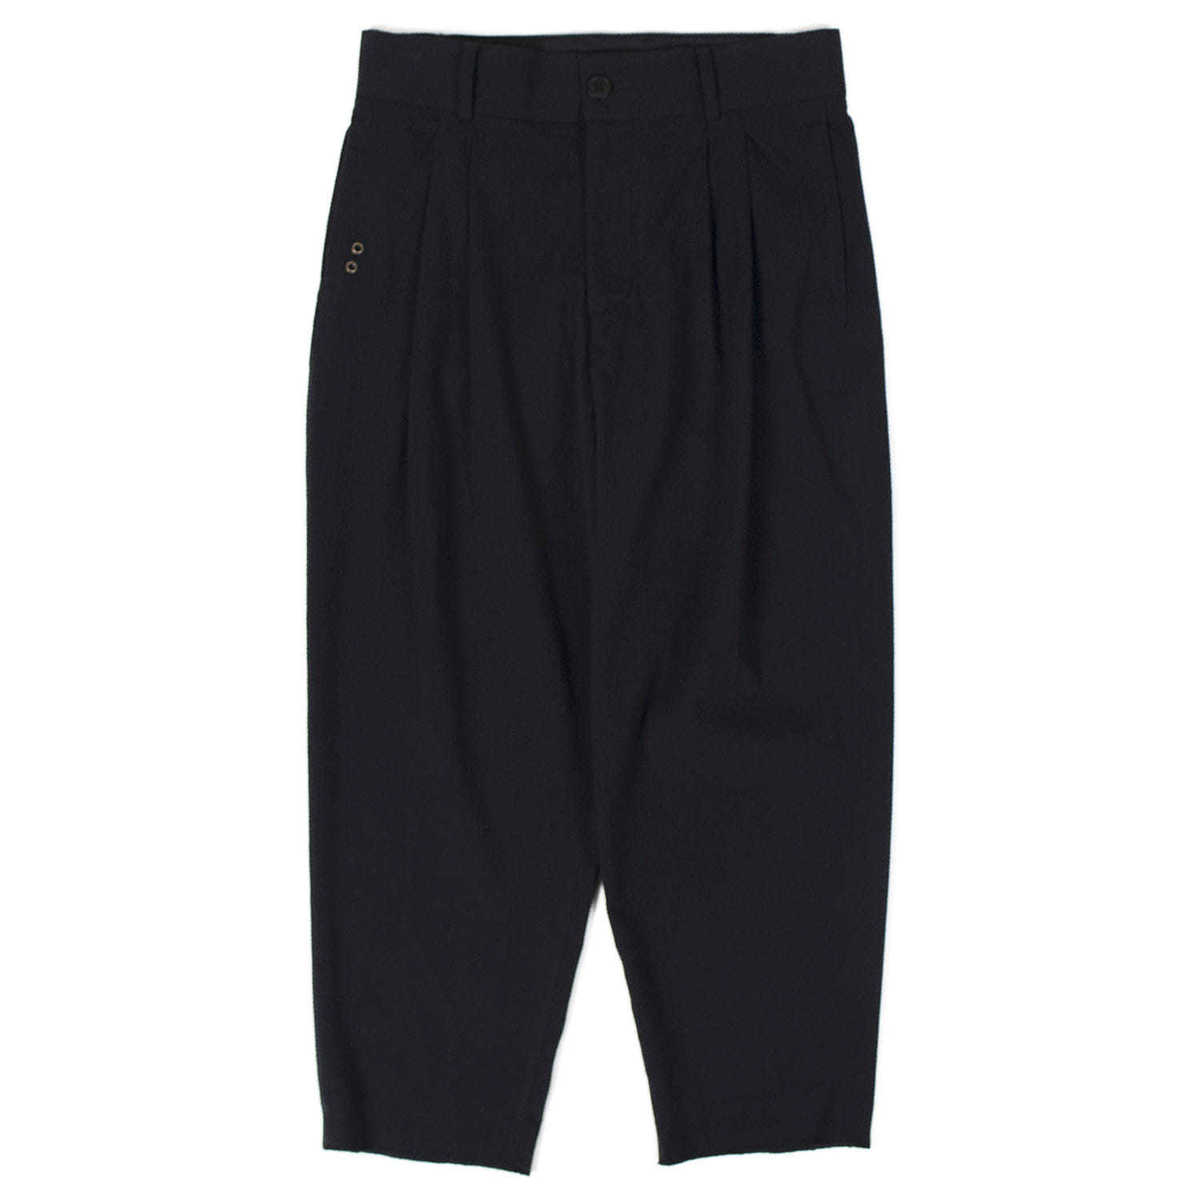 Inno Pleated Seersucker Pants (Black)